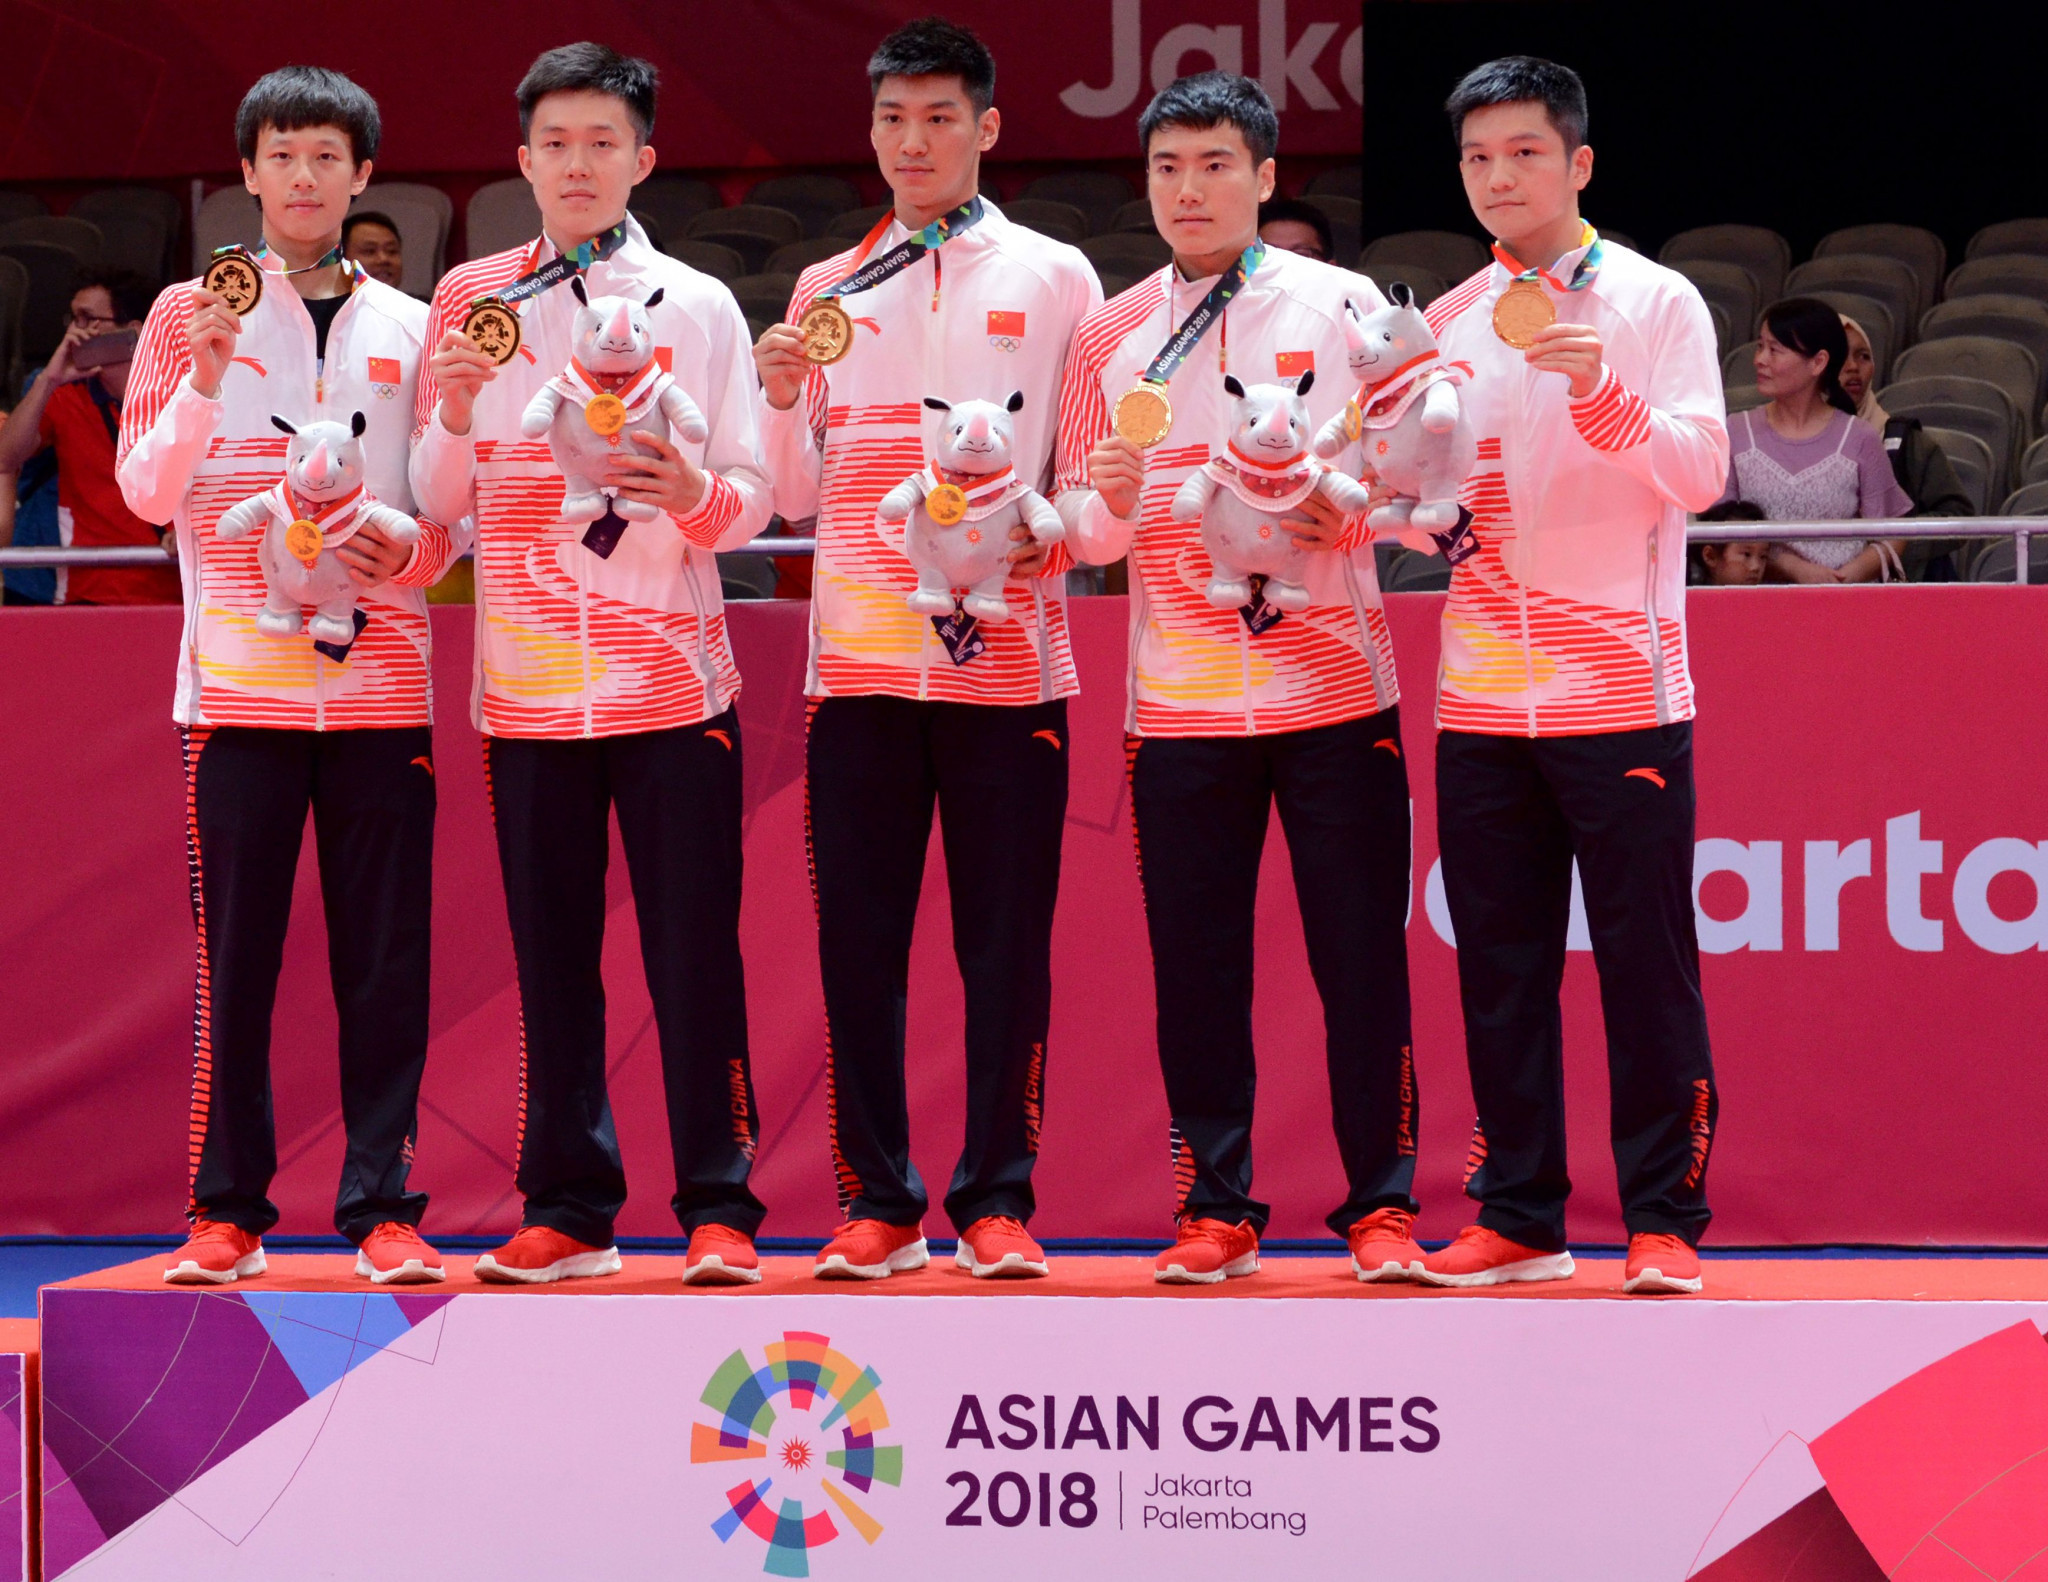 China's most recent expression of domination in table tennis - team gold at the 2018 Asian Games in Jakarta ©Getty Images